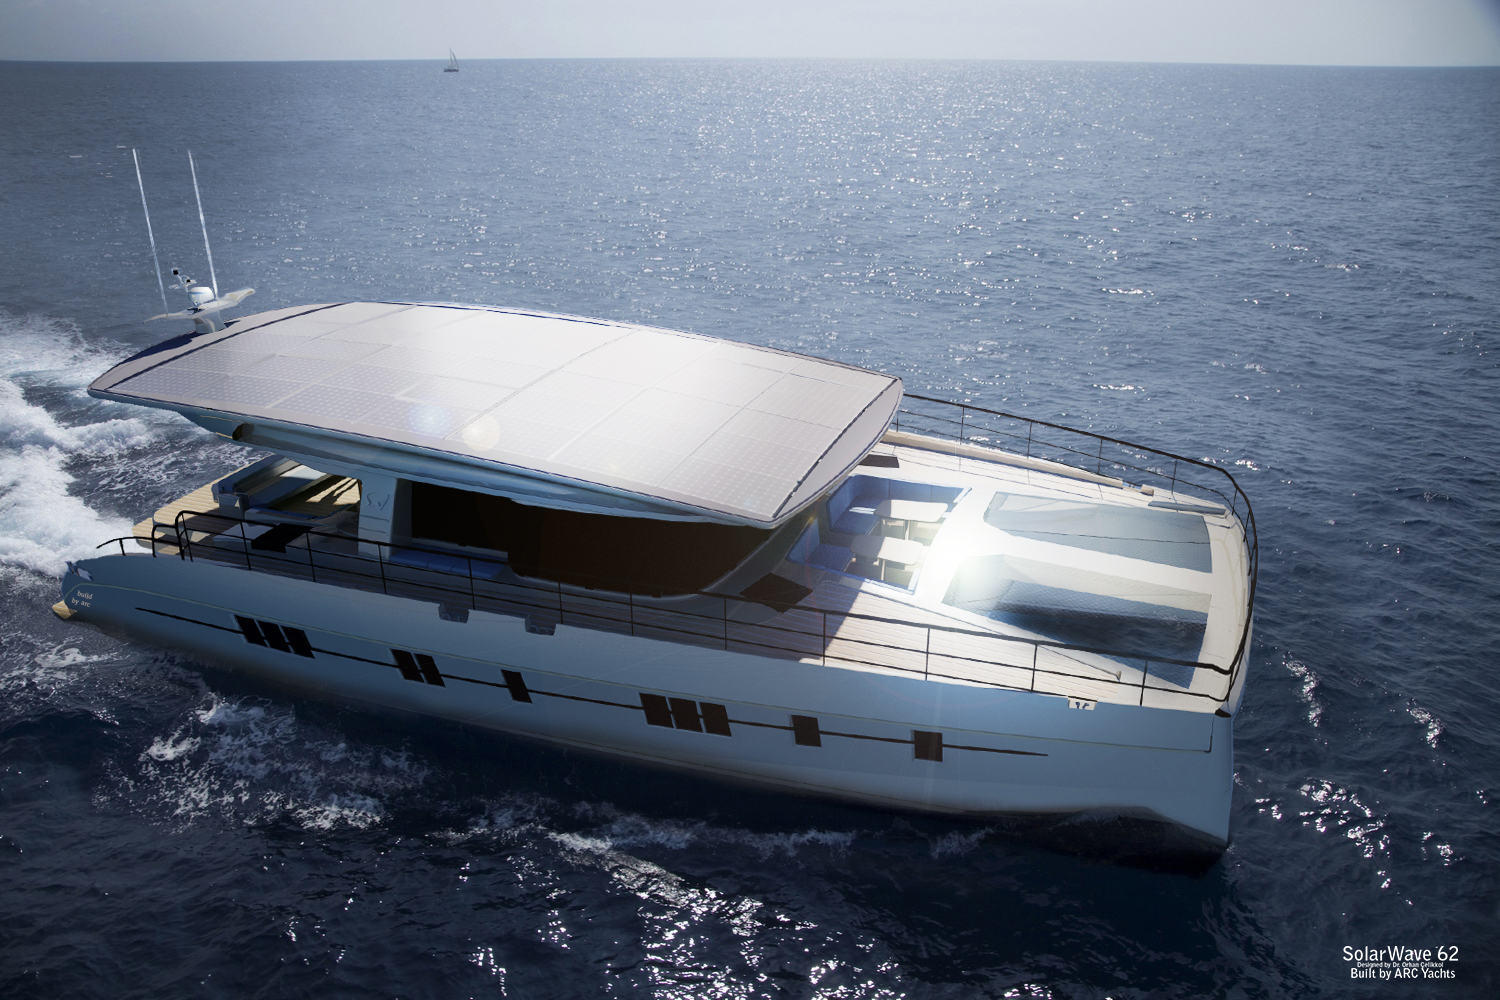 Solarwave 62 The World S First Zero Emission Luxury Motor Yacht